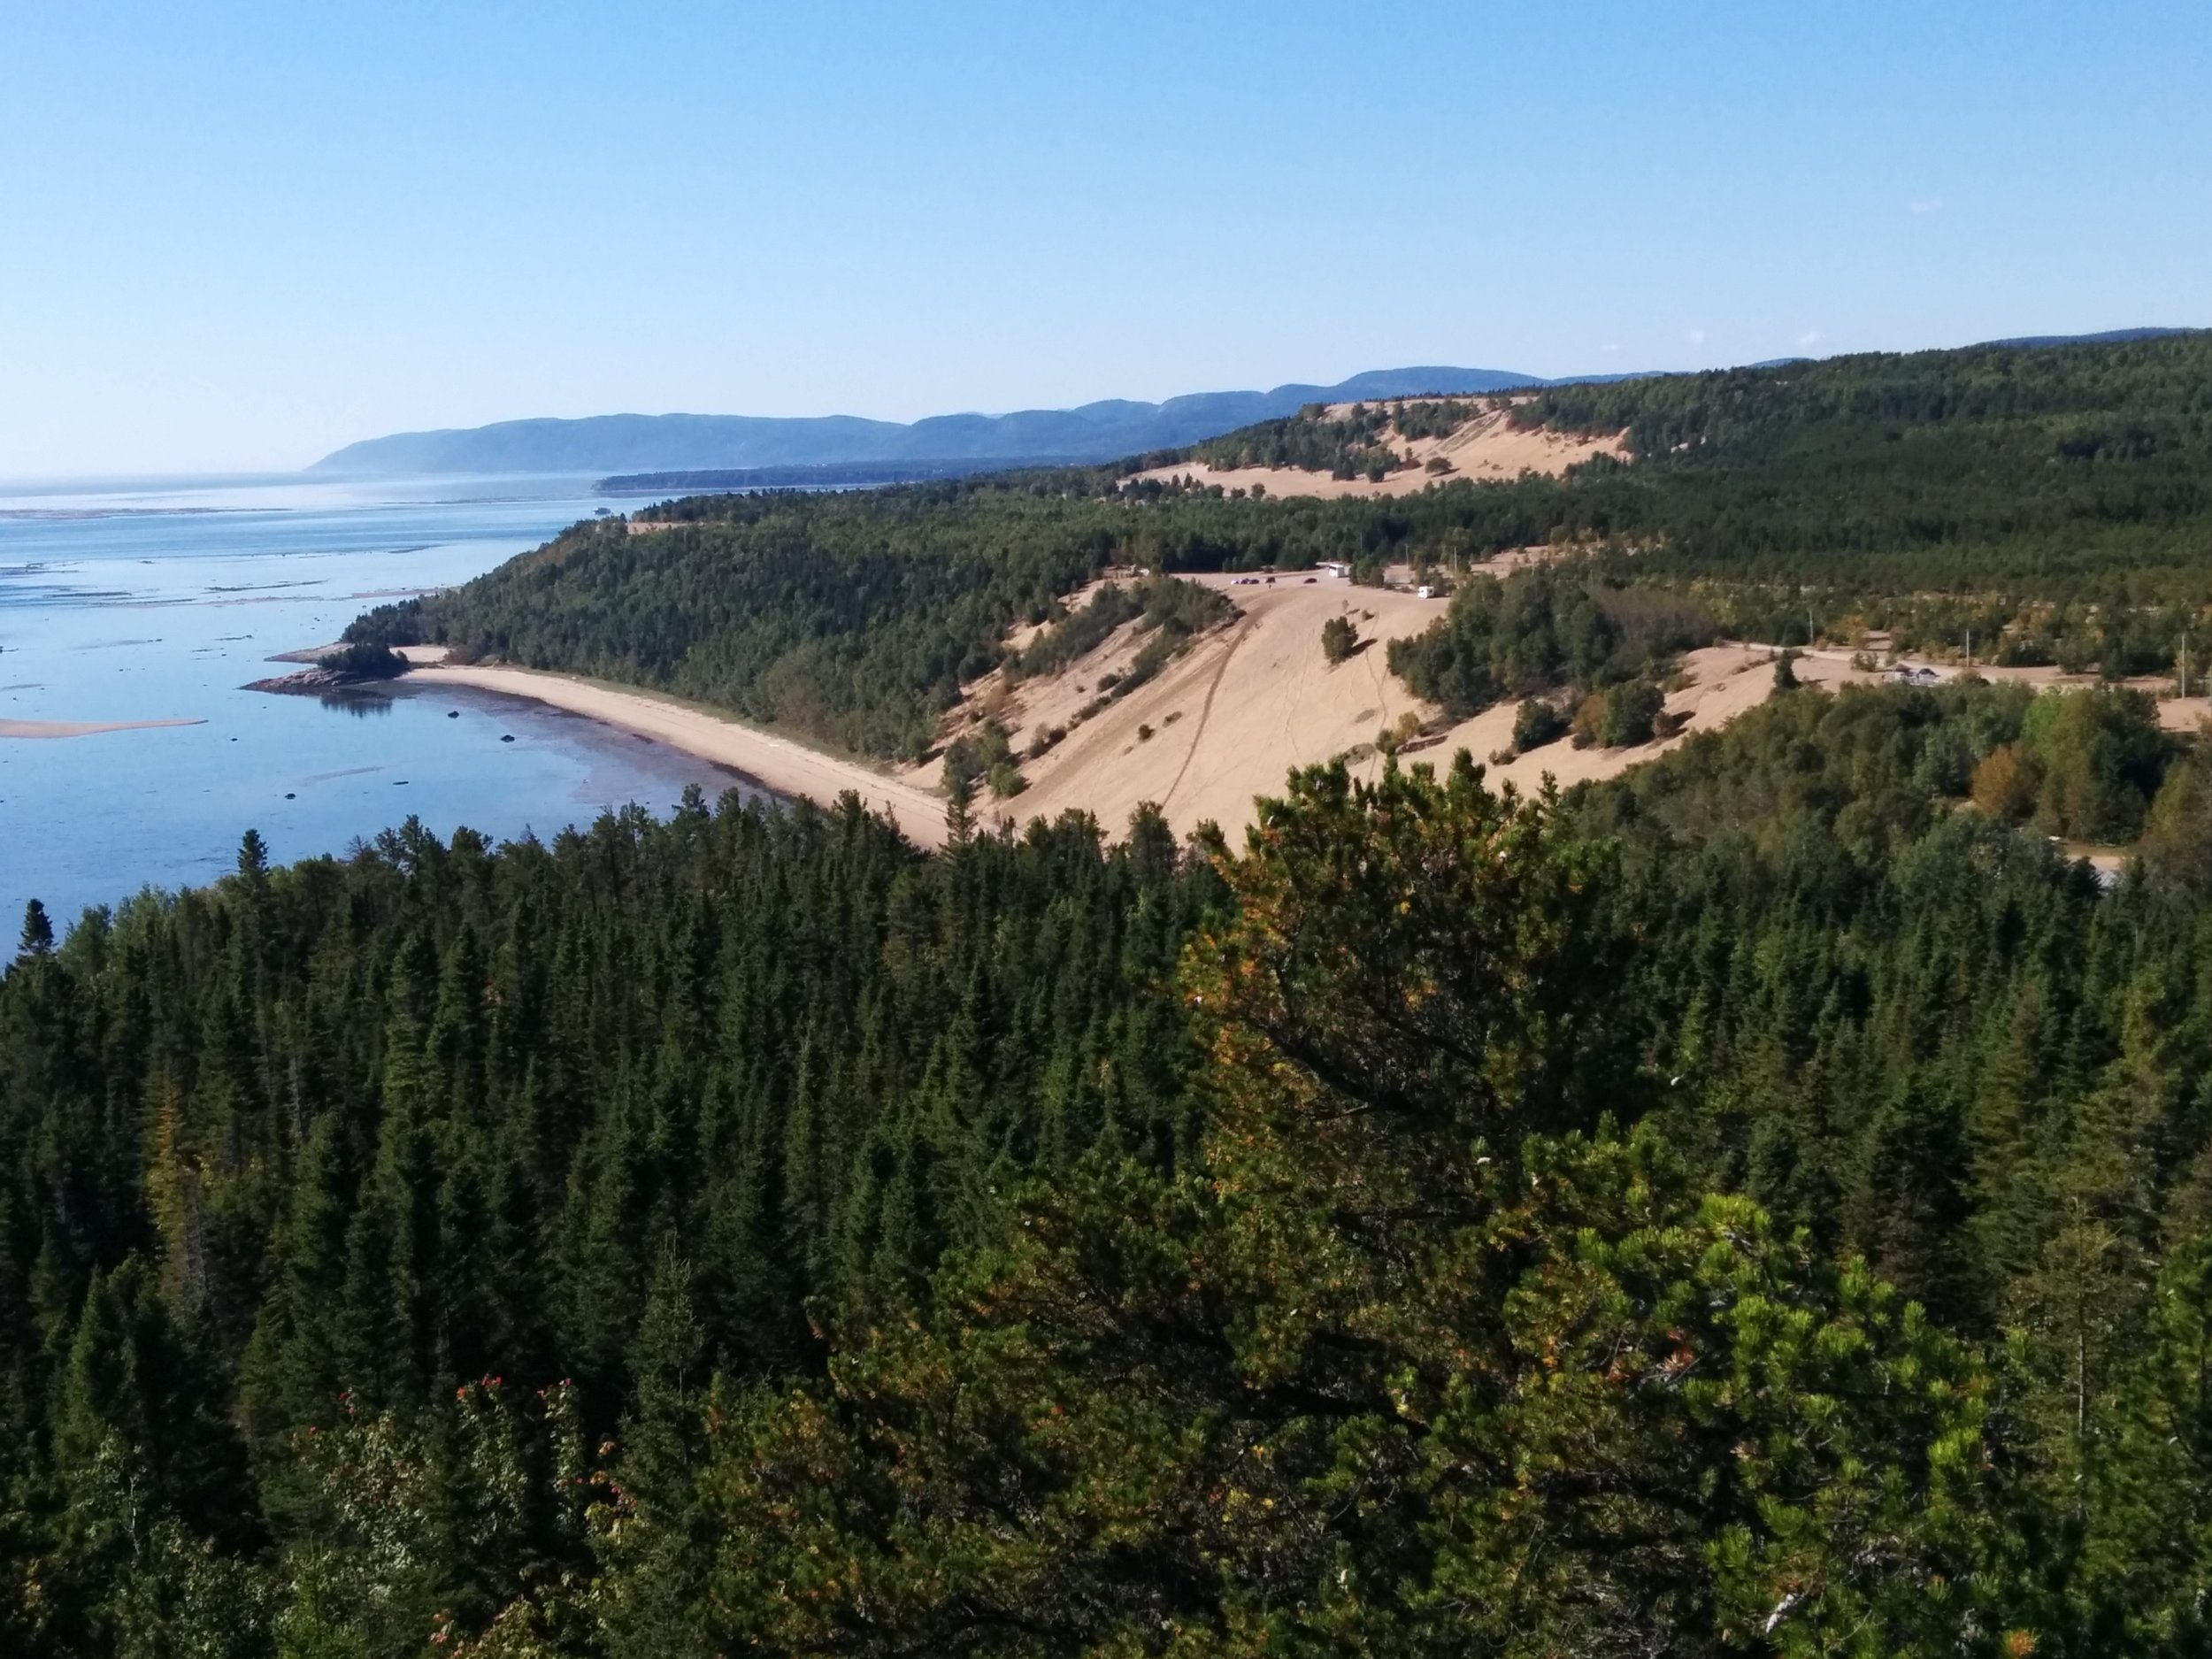 Tadoussac dunes from the lookout